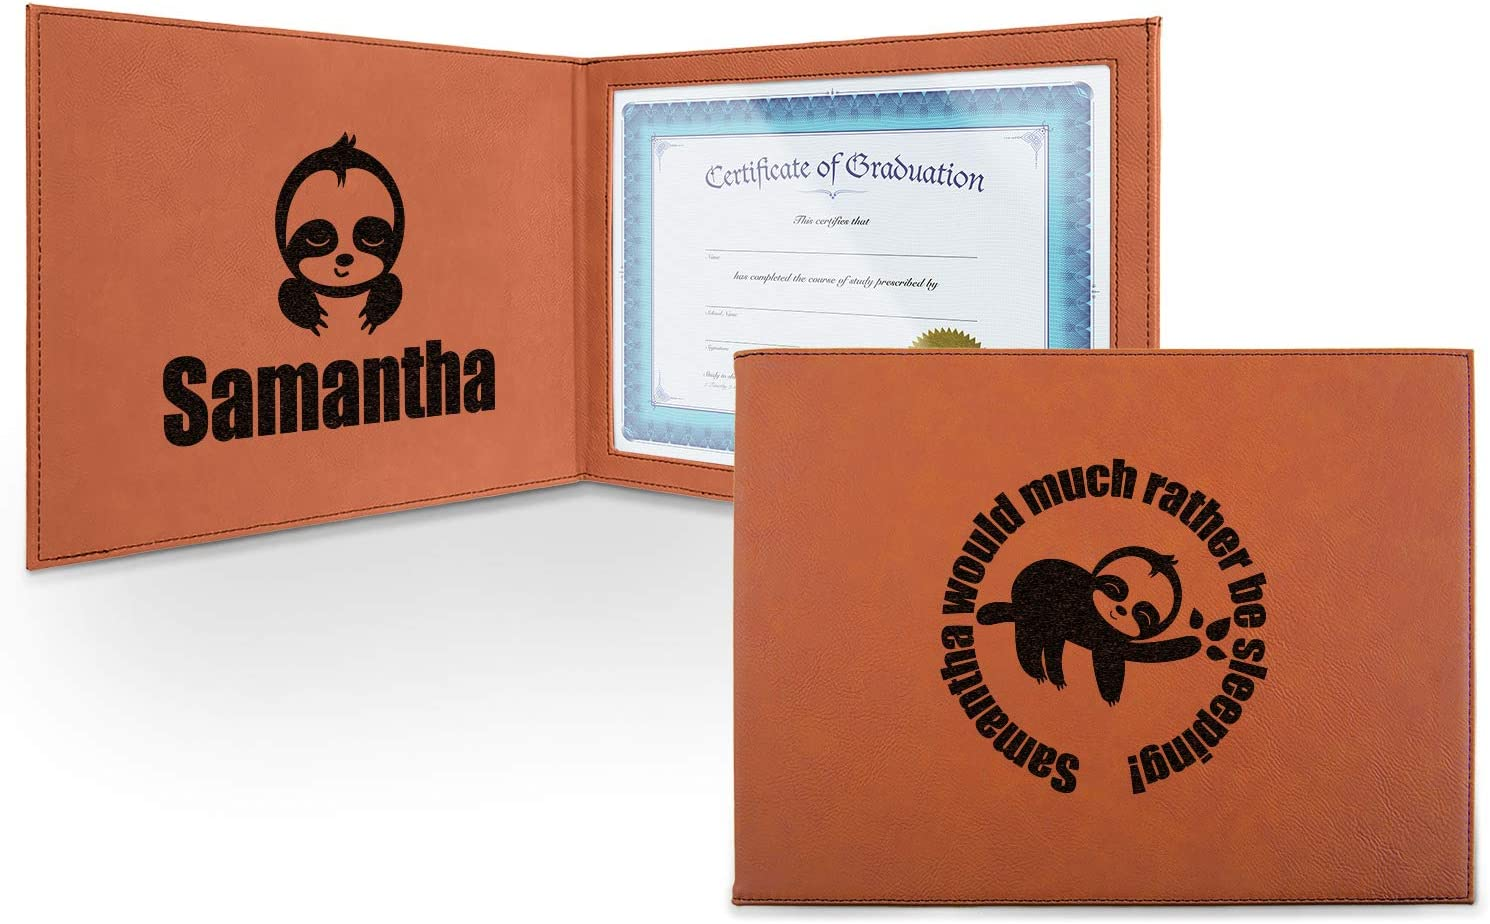 Sloth Leatherette Certificate Holder - Memphis Free Shipping New Mall Persona Inside and Front